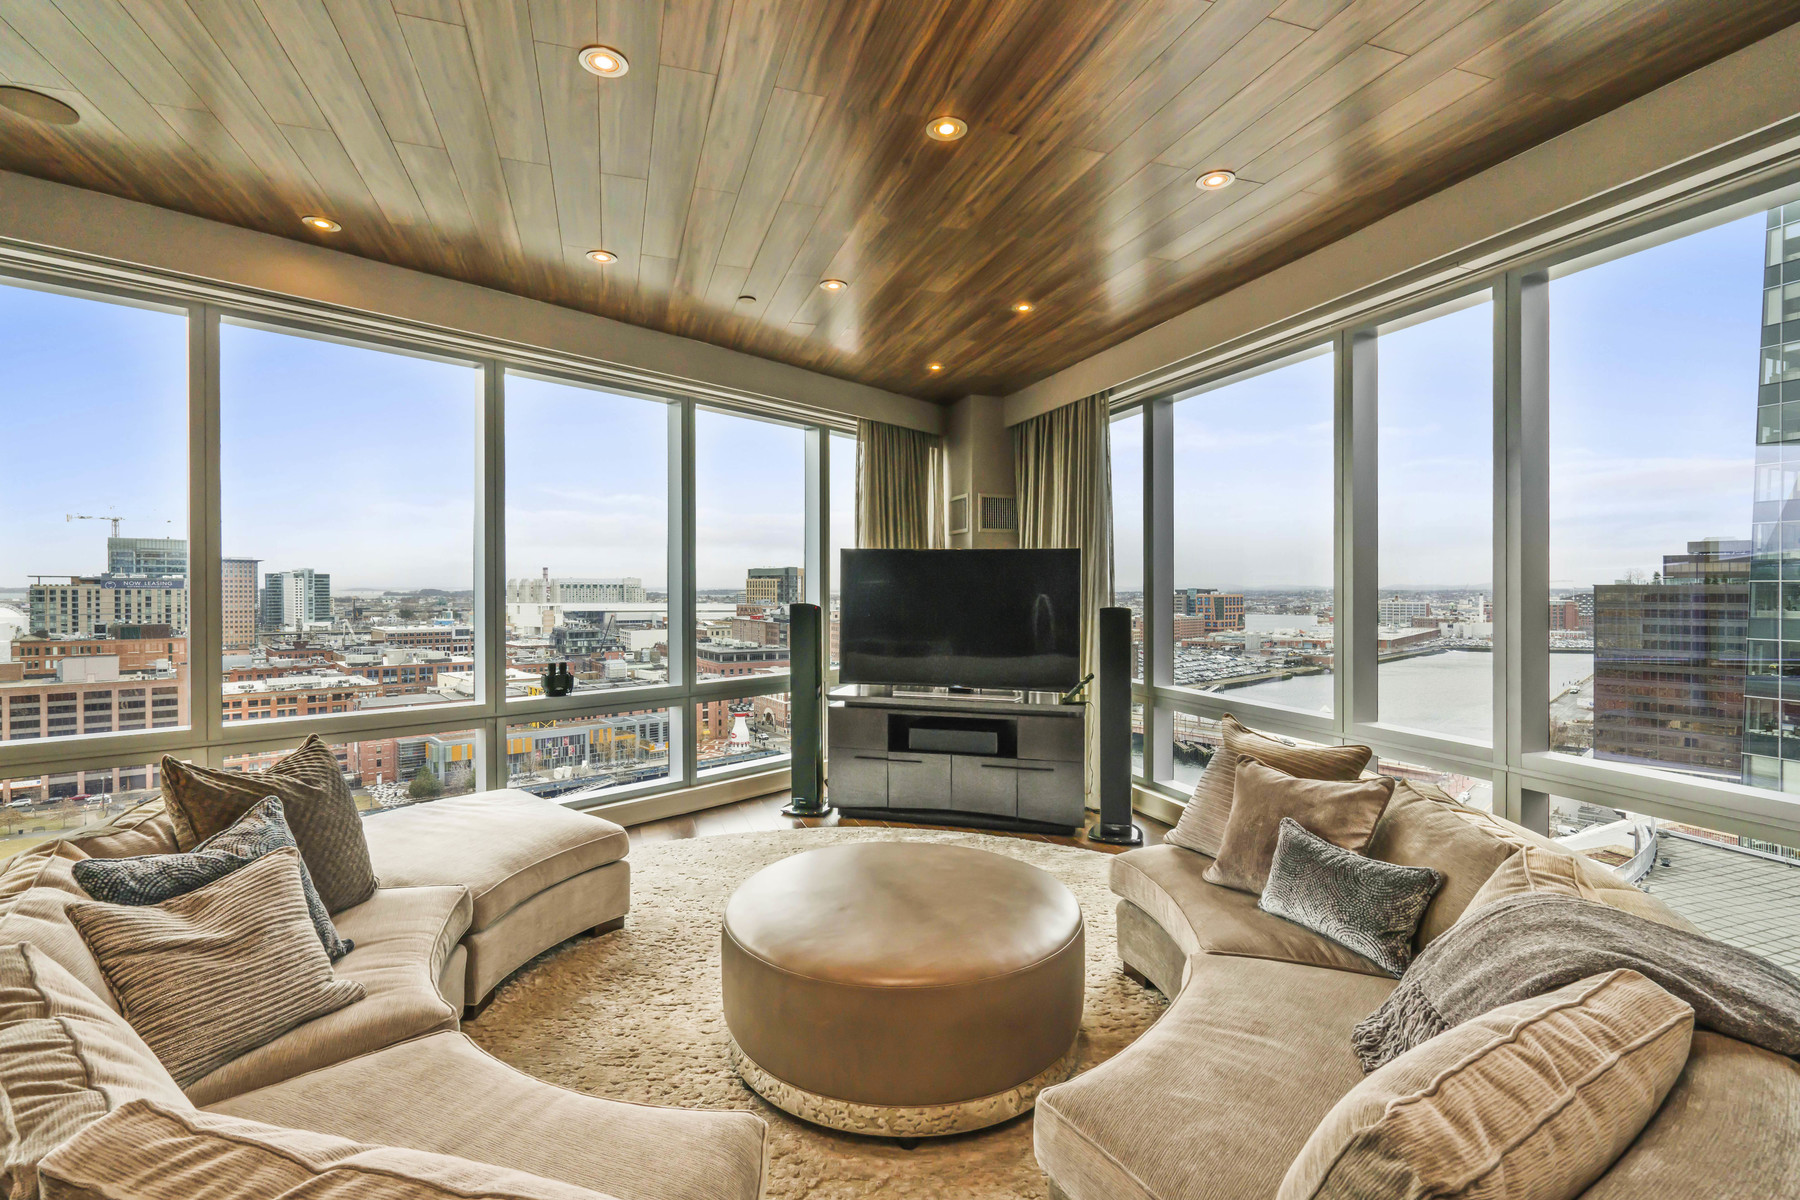 共管式独立产权公寓 为 销售 在 Magnficient Harbor Views From Every Room Of This Luxury Condo 500 Atlantic Avenue Unit 16K Waterfront, 波士顿, 马萨诸塞州, 02210 美国